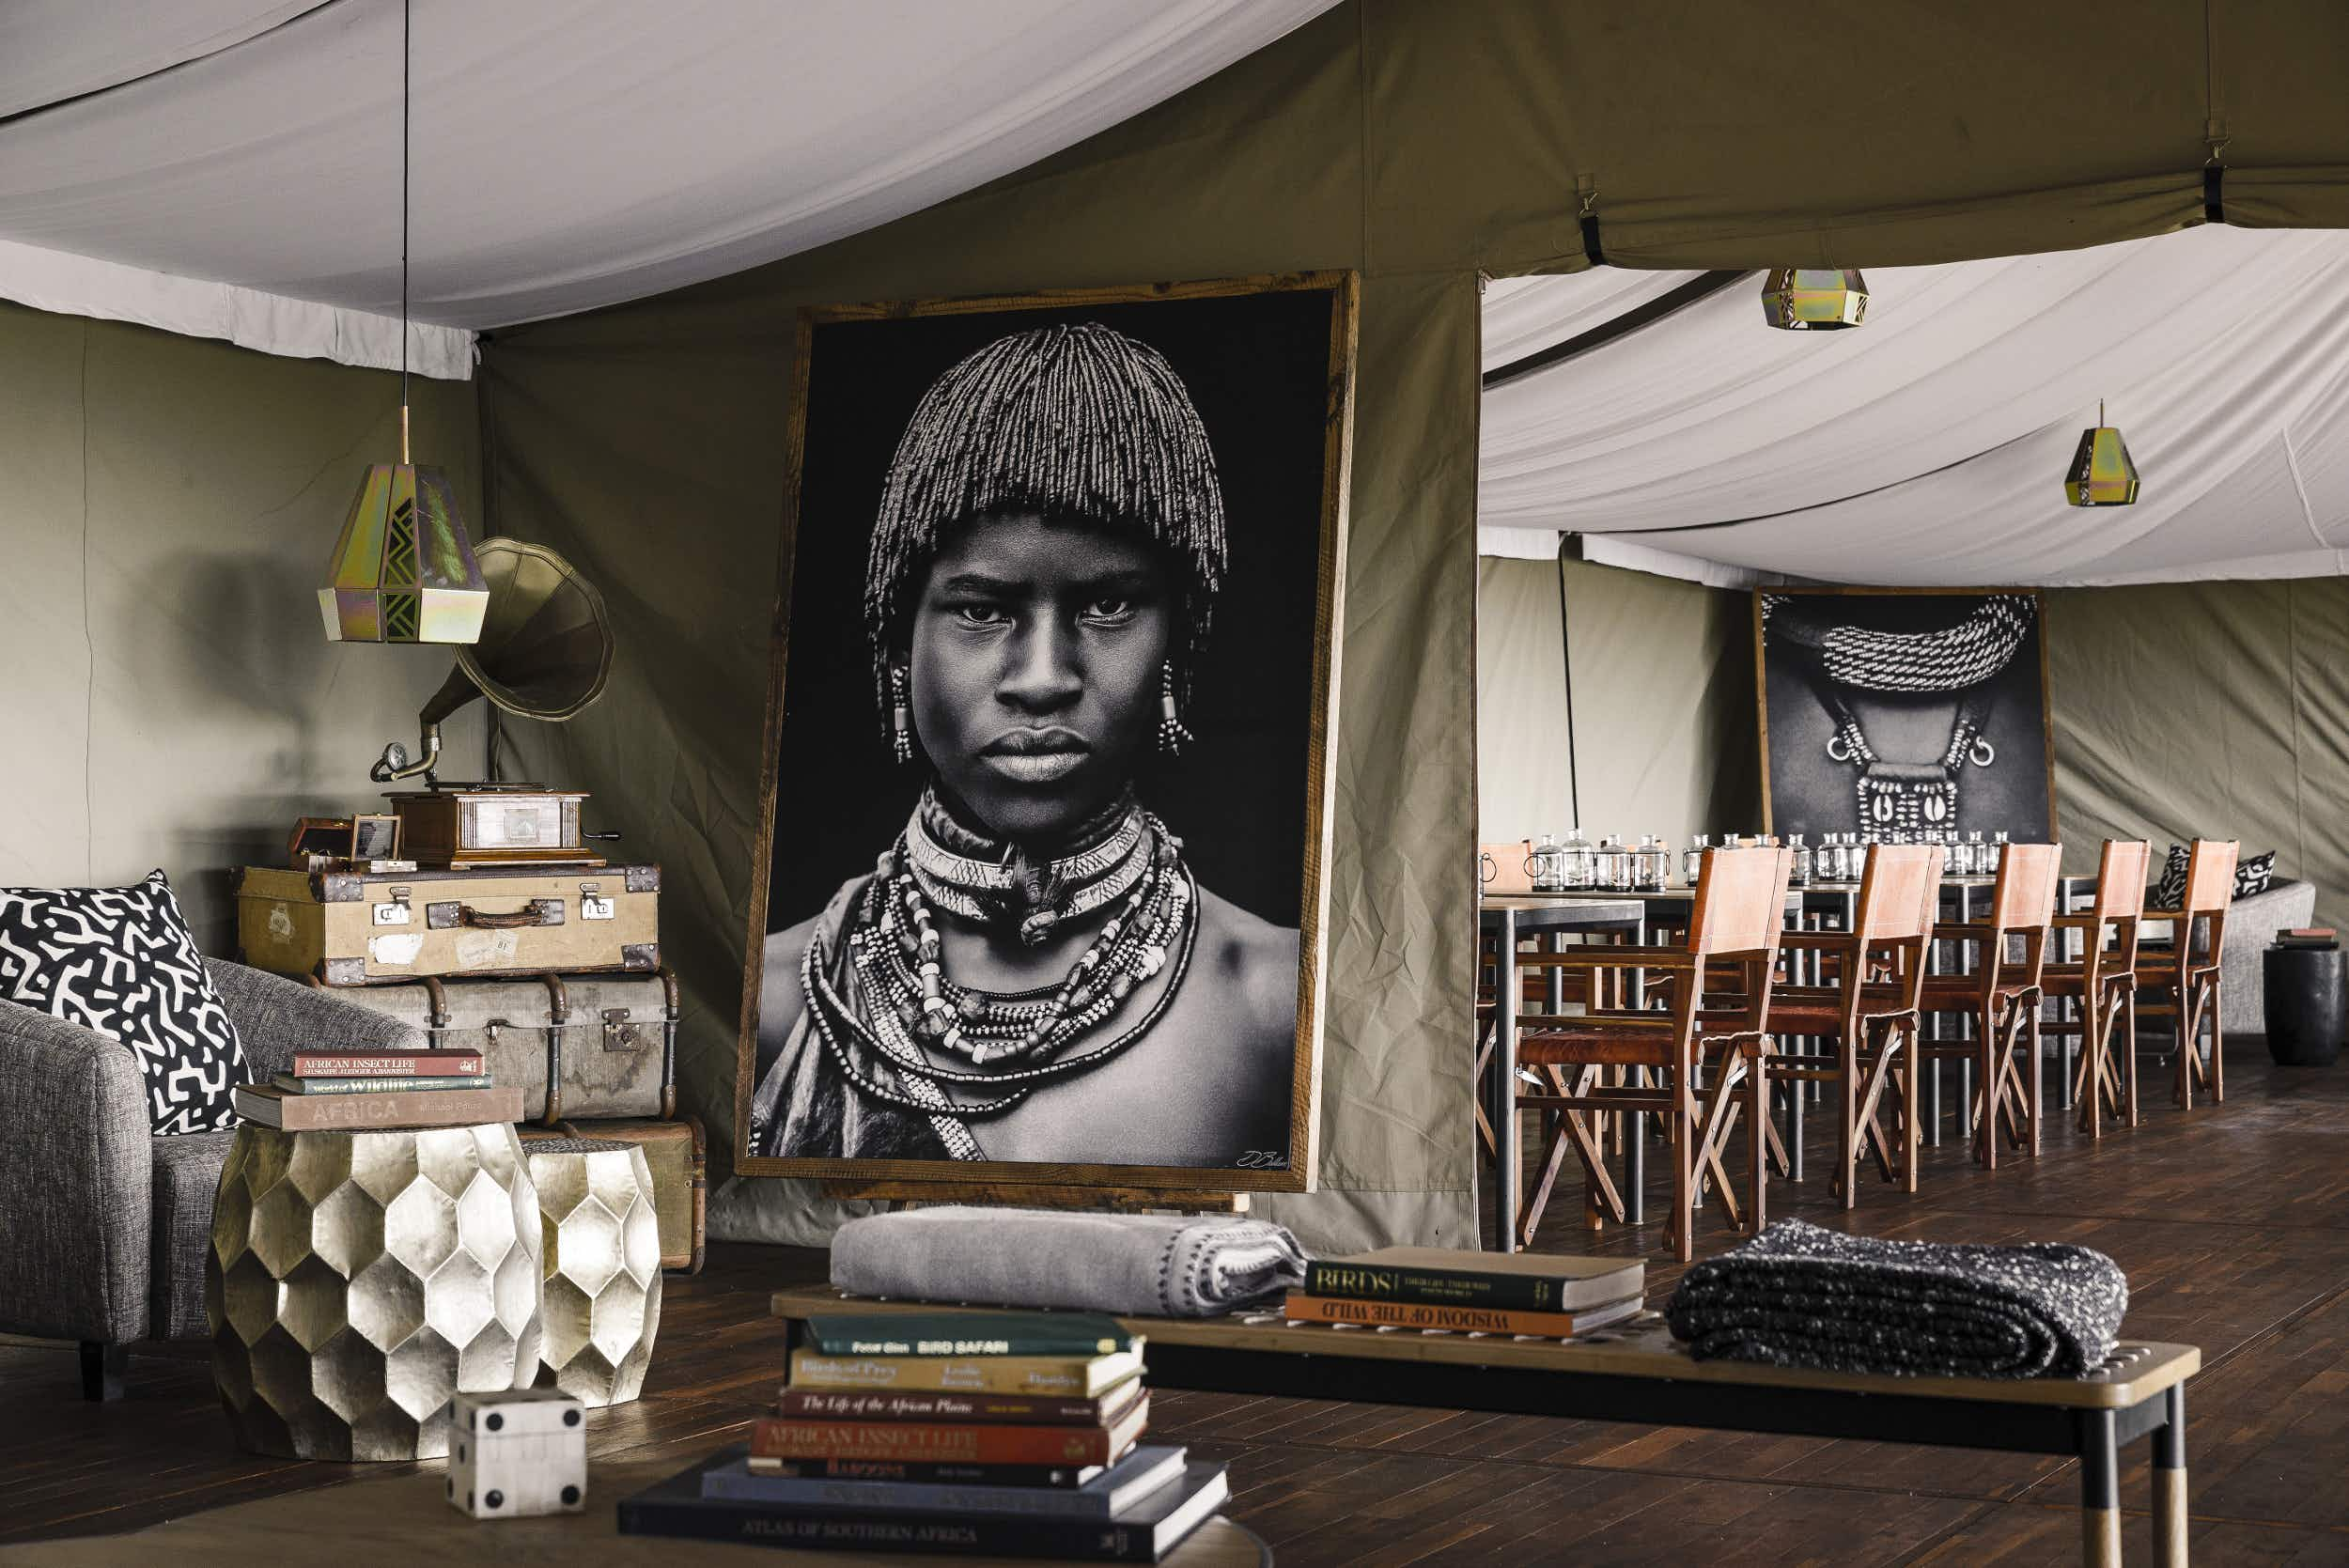 Track wildebeest across the Serengeti and stay at this classic campsite